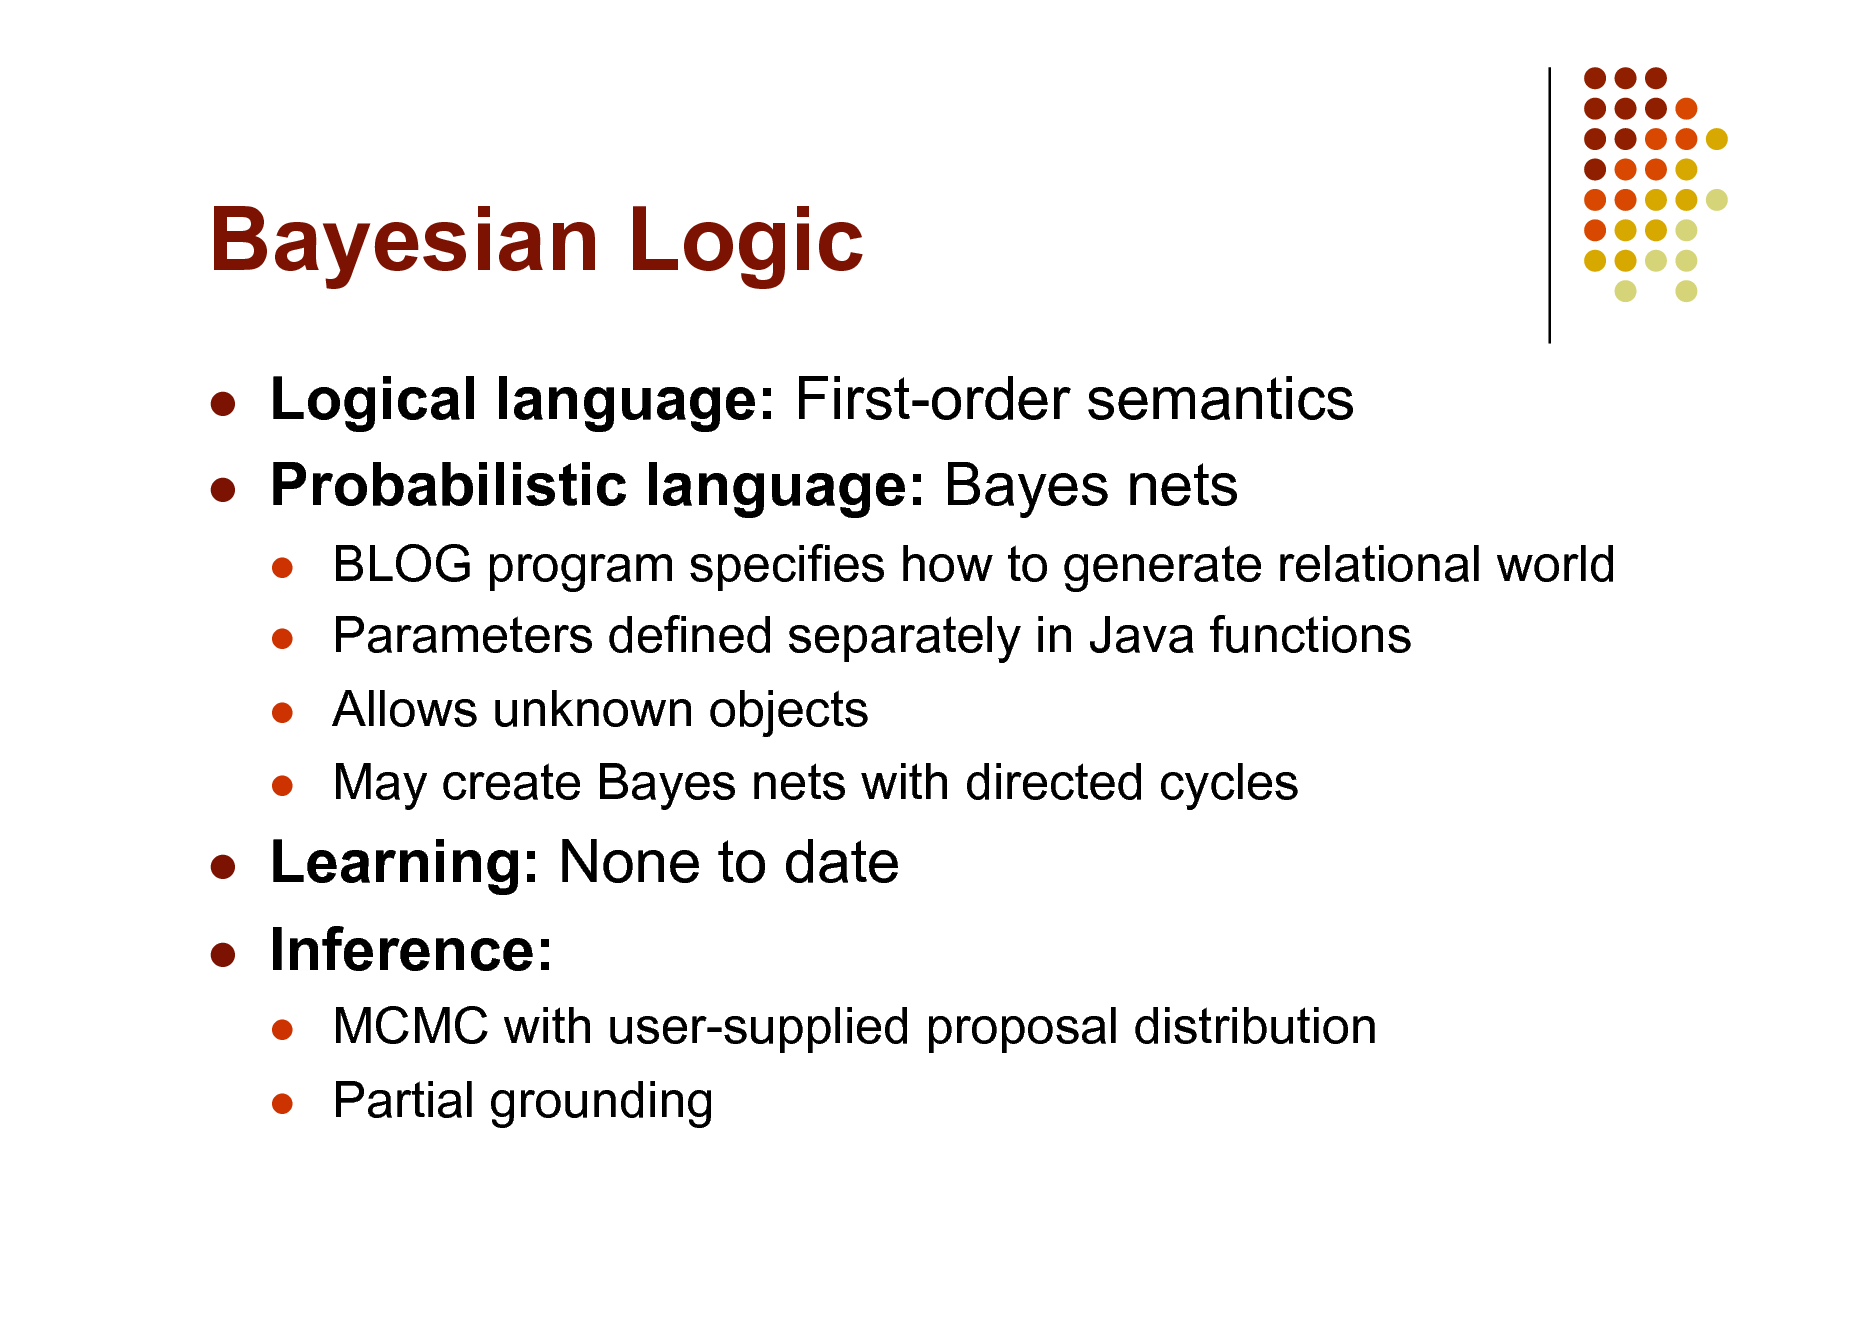 Slide: Bayesian Logic    Logical language: First-order semantics Probabilistic language: Bayes nets      BLOG program specifies how to generate relational world Parameters defined separately in Java functions Allows unknown objects May create Bayes nets with directed cycles     Learning: None to date Inference:    MCMC with user-supplied proposal distribution Partial grounding